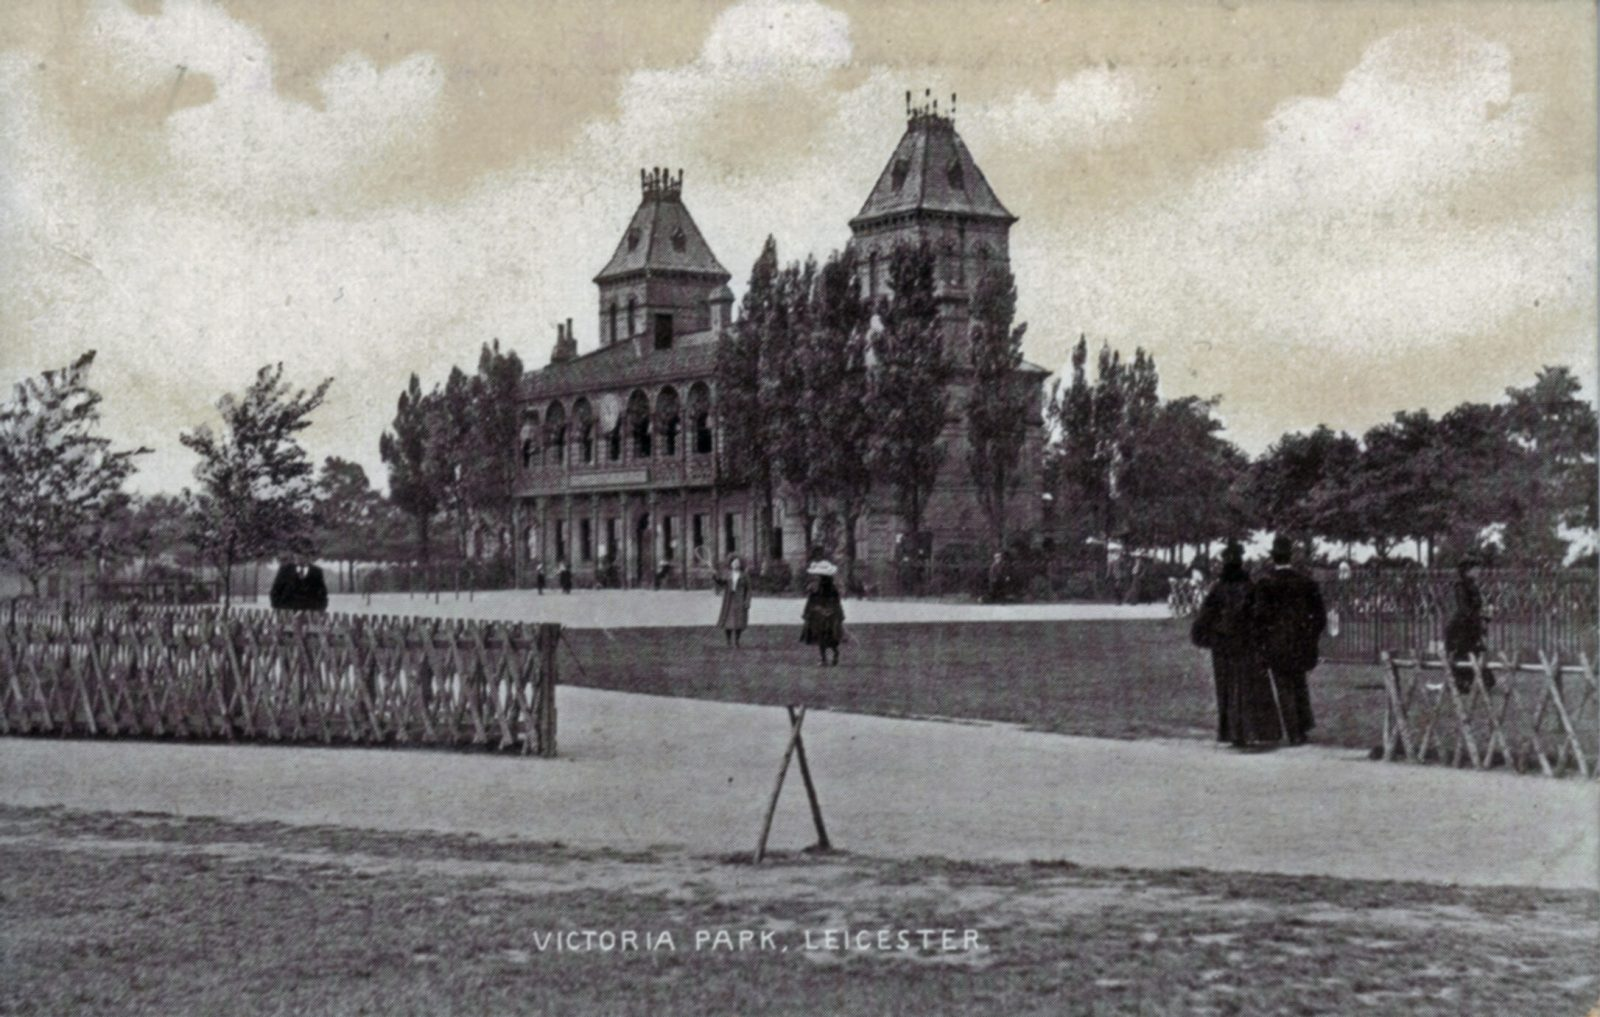 Victoria Park, Leicester. 1901-1920: Pavilion and rustic fences. People walking. (File:1085)